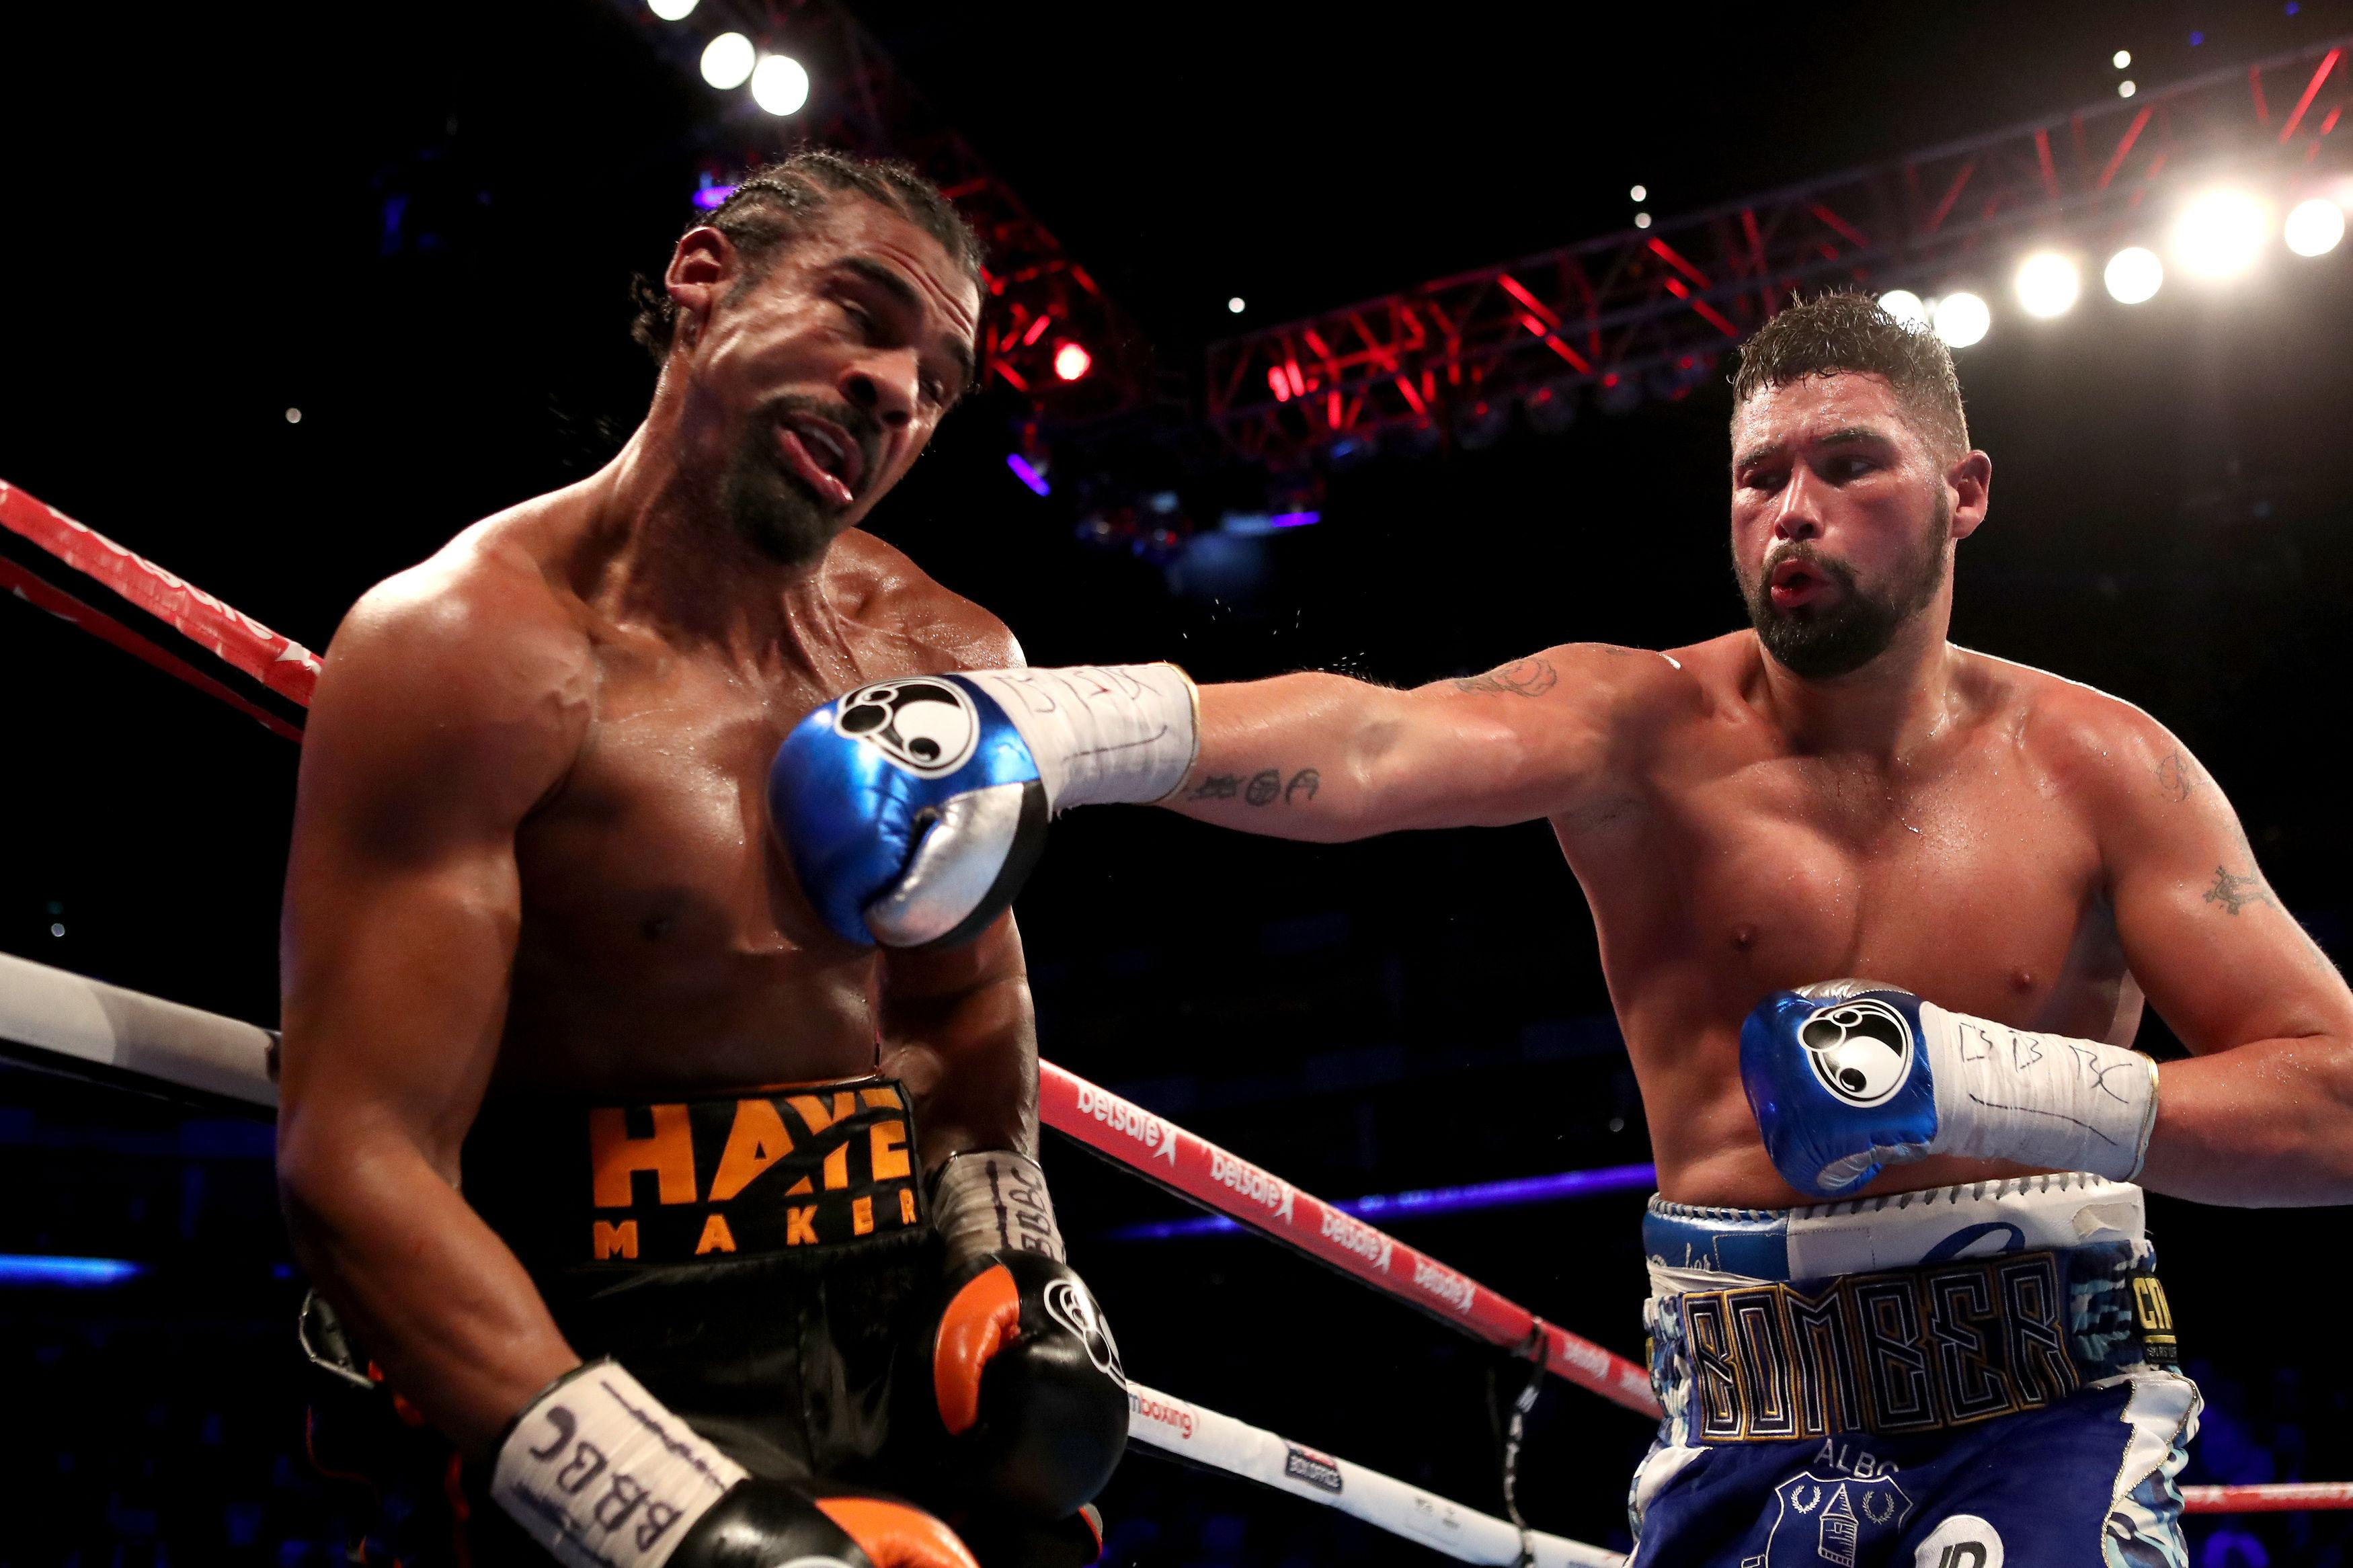 It was the first time Bellew had fought at heavyweight - having previously reigning as WBC world champion at cruiserweight